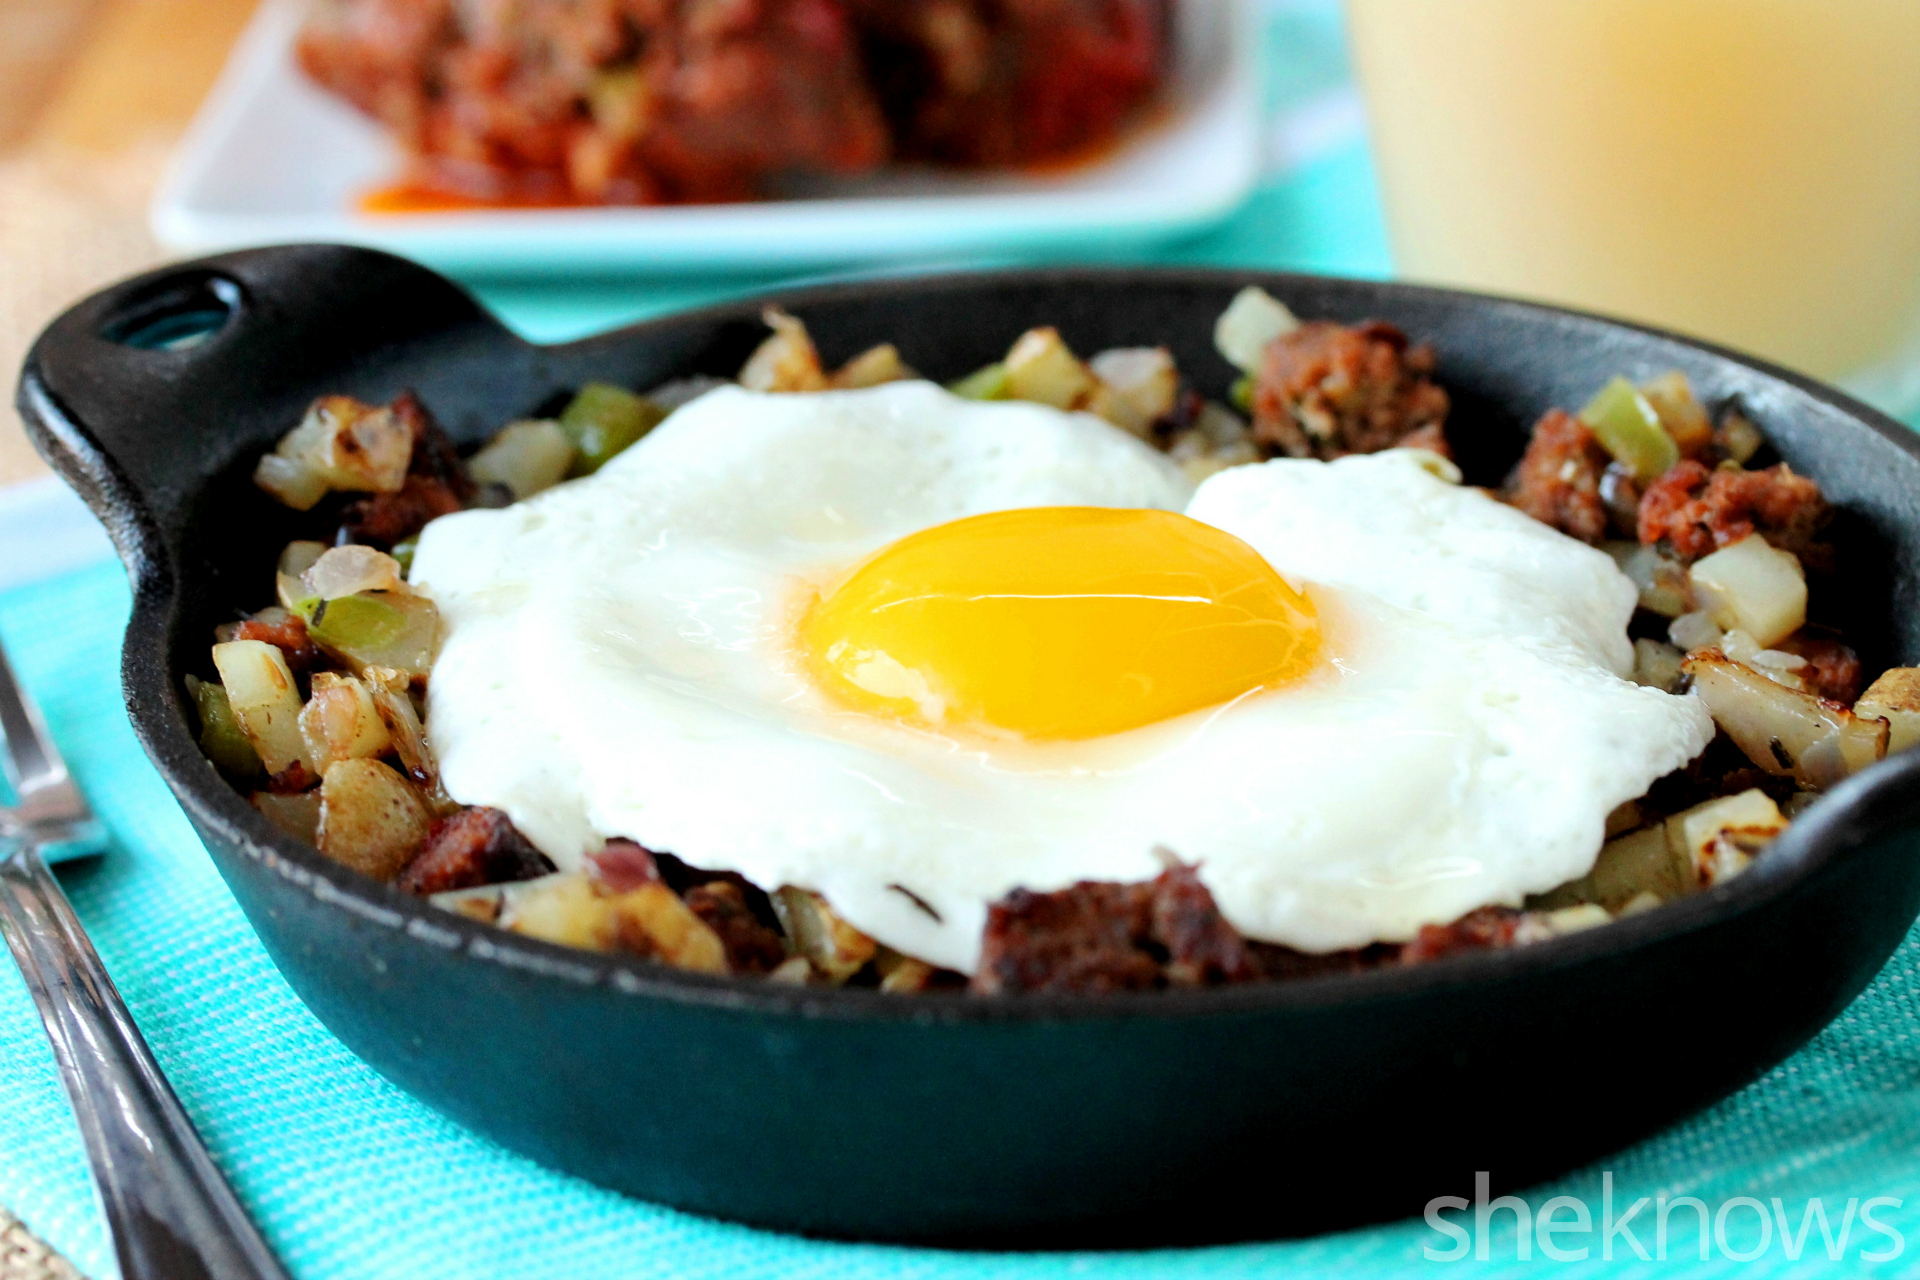 meatloaf and egg hash in pan